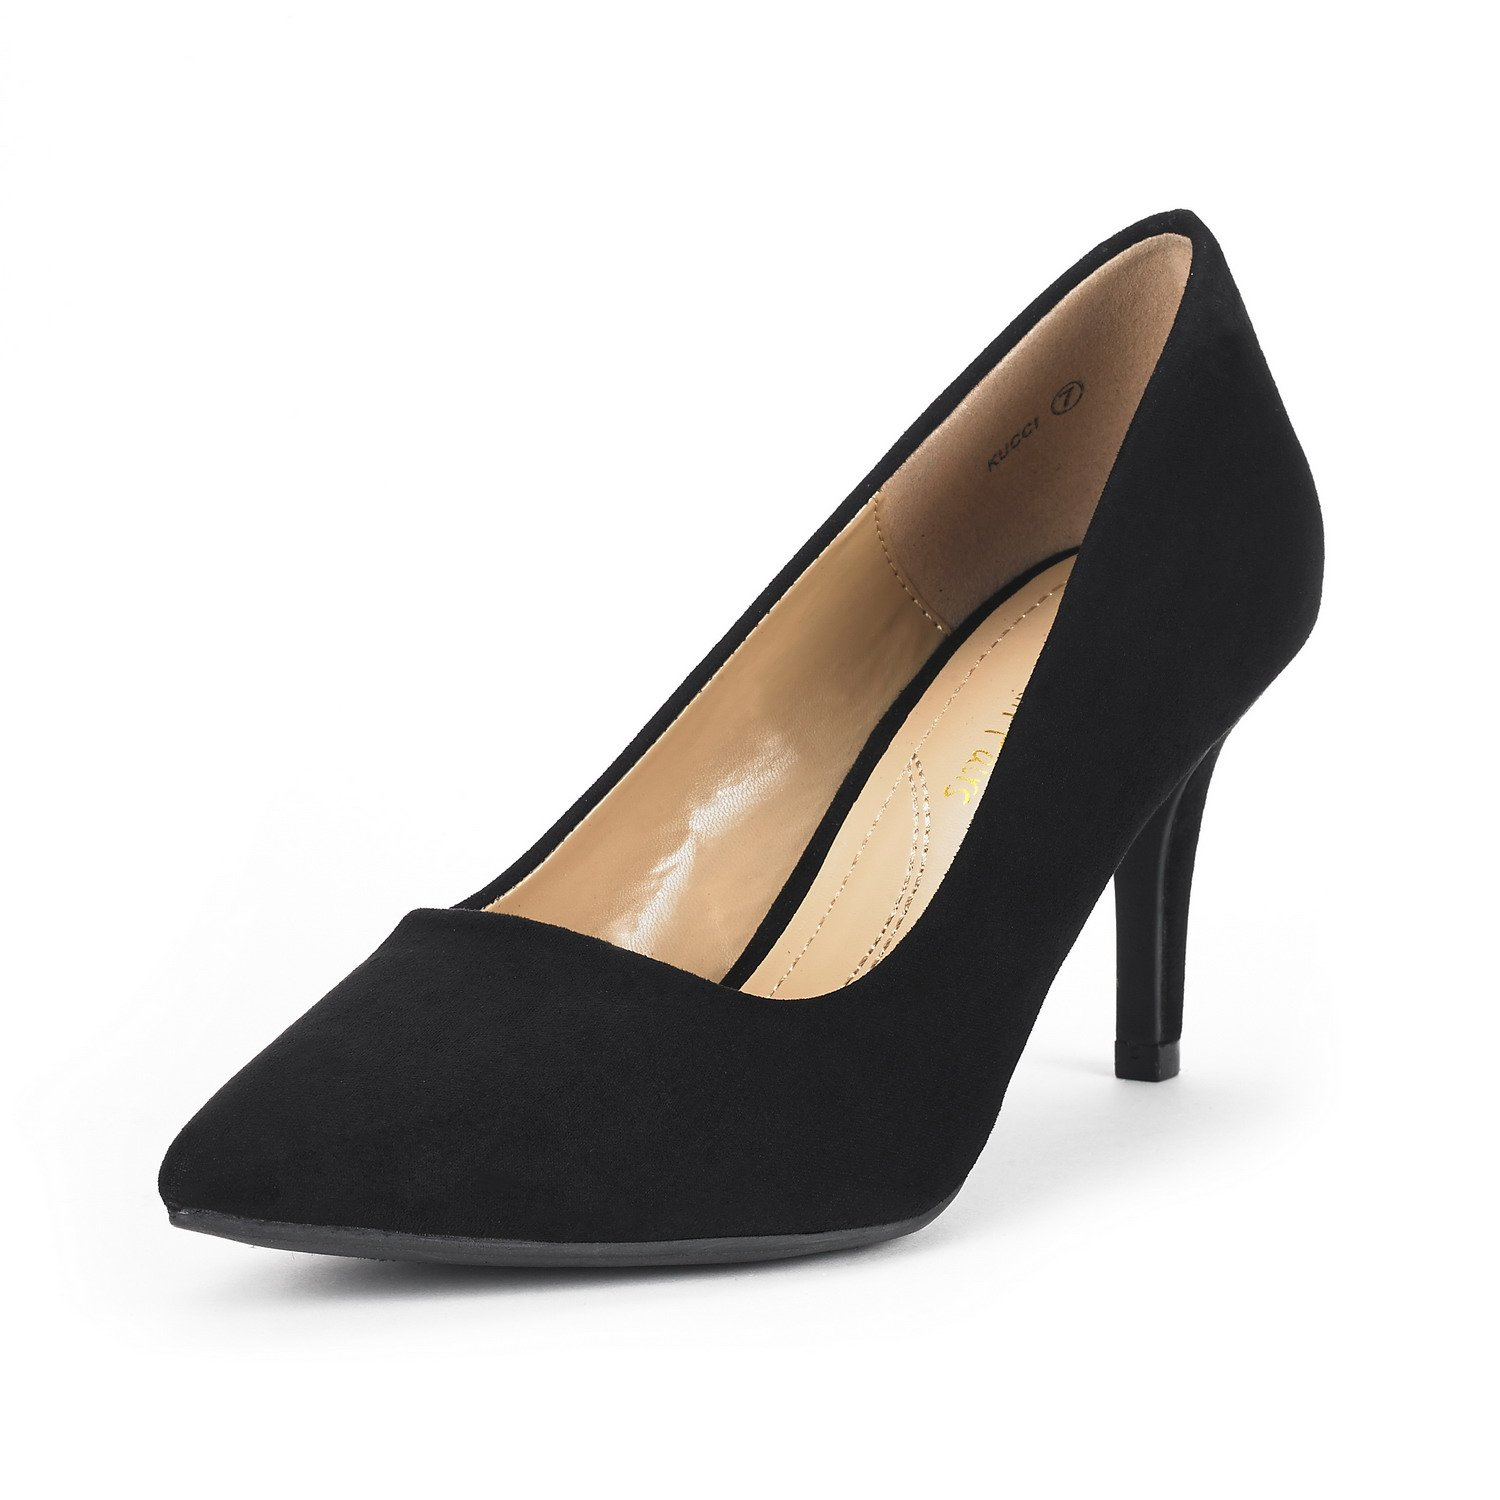 DREAM PAIRS Women's KUCCI Black Suede Classic Fashion Pointed Toe High Heel Dress Pumps Shoes Size 11 M US by DREAM PAIRS